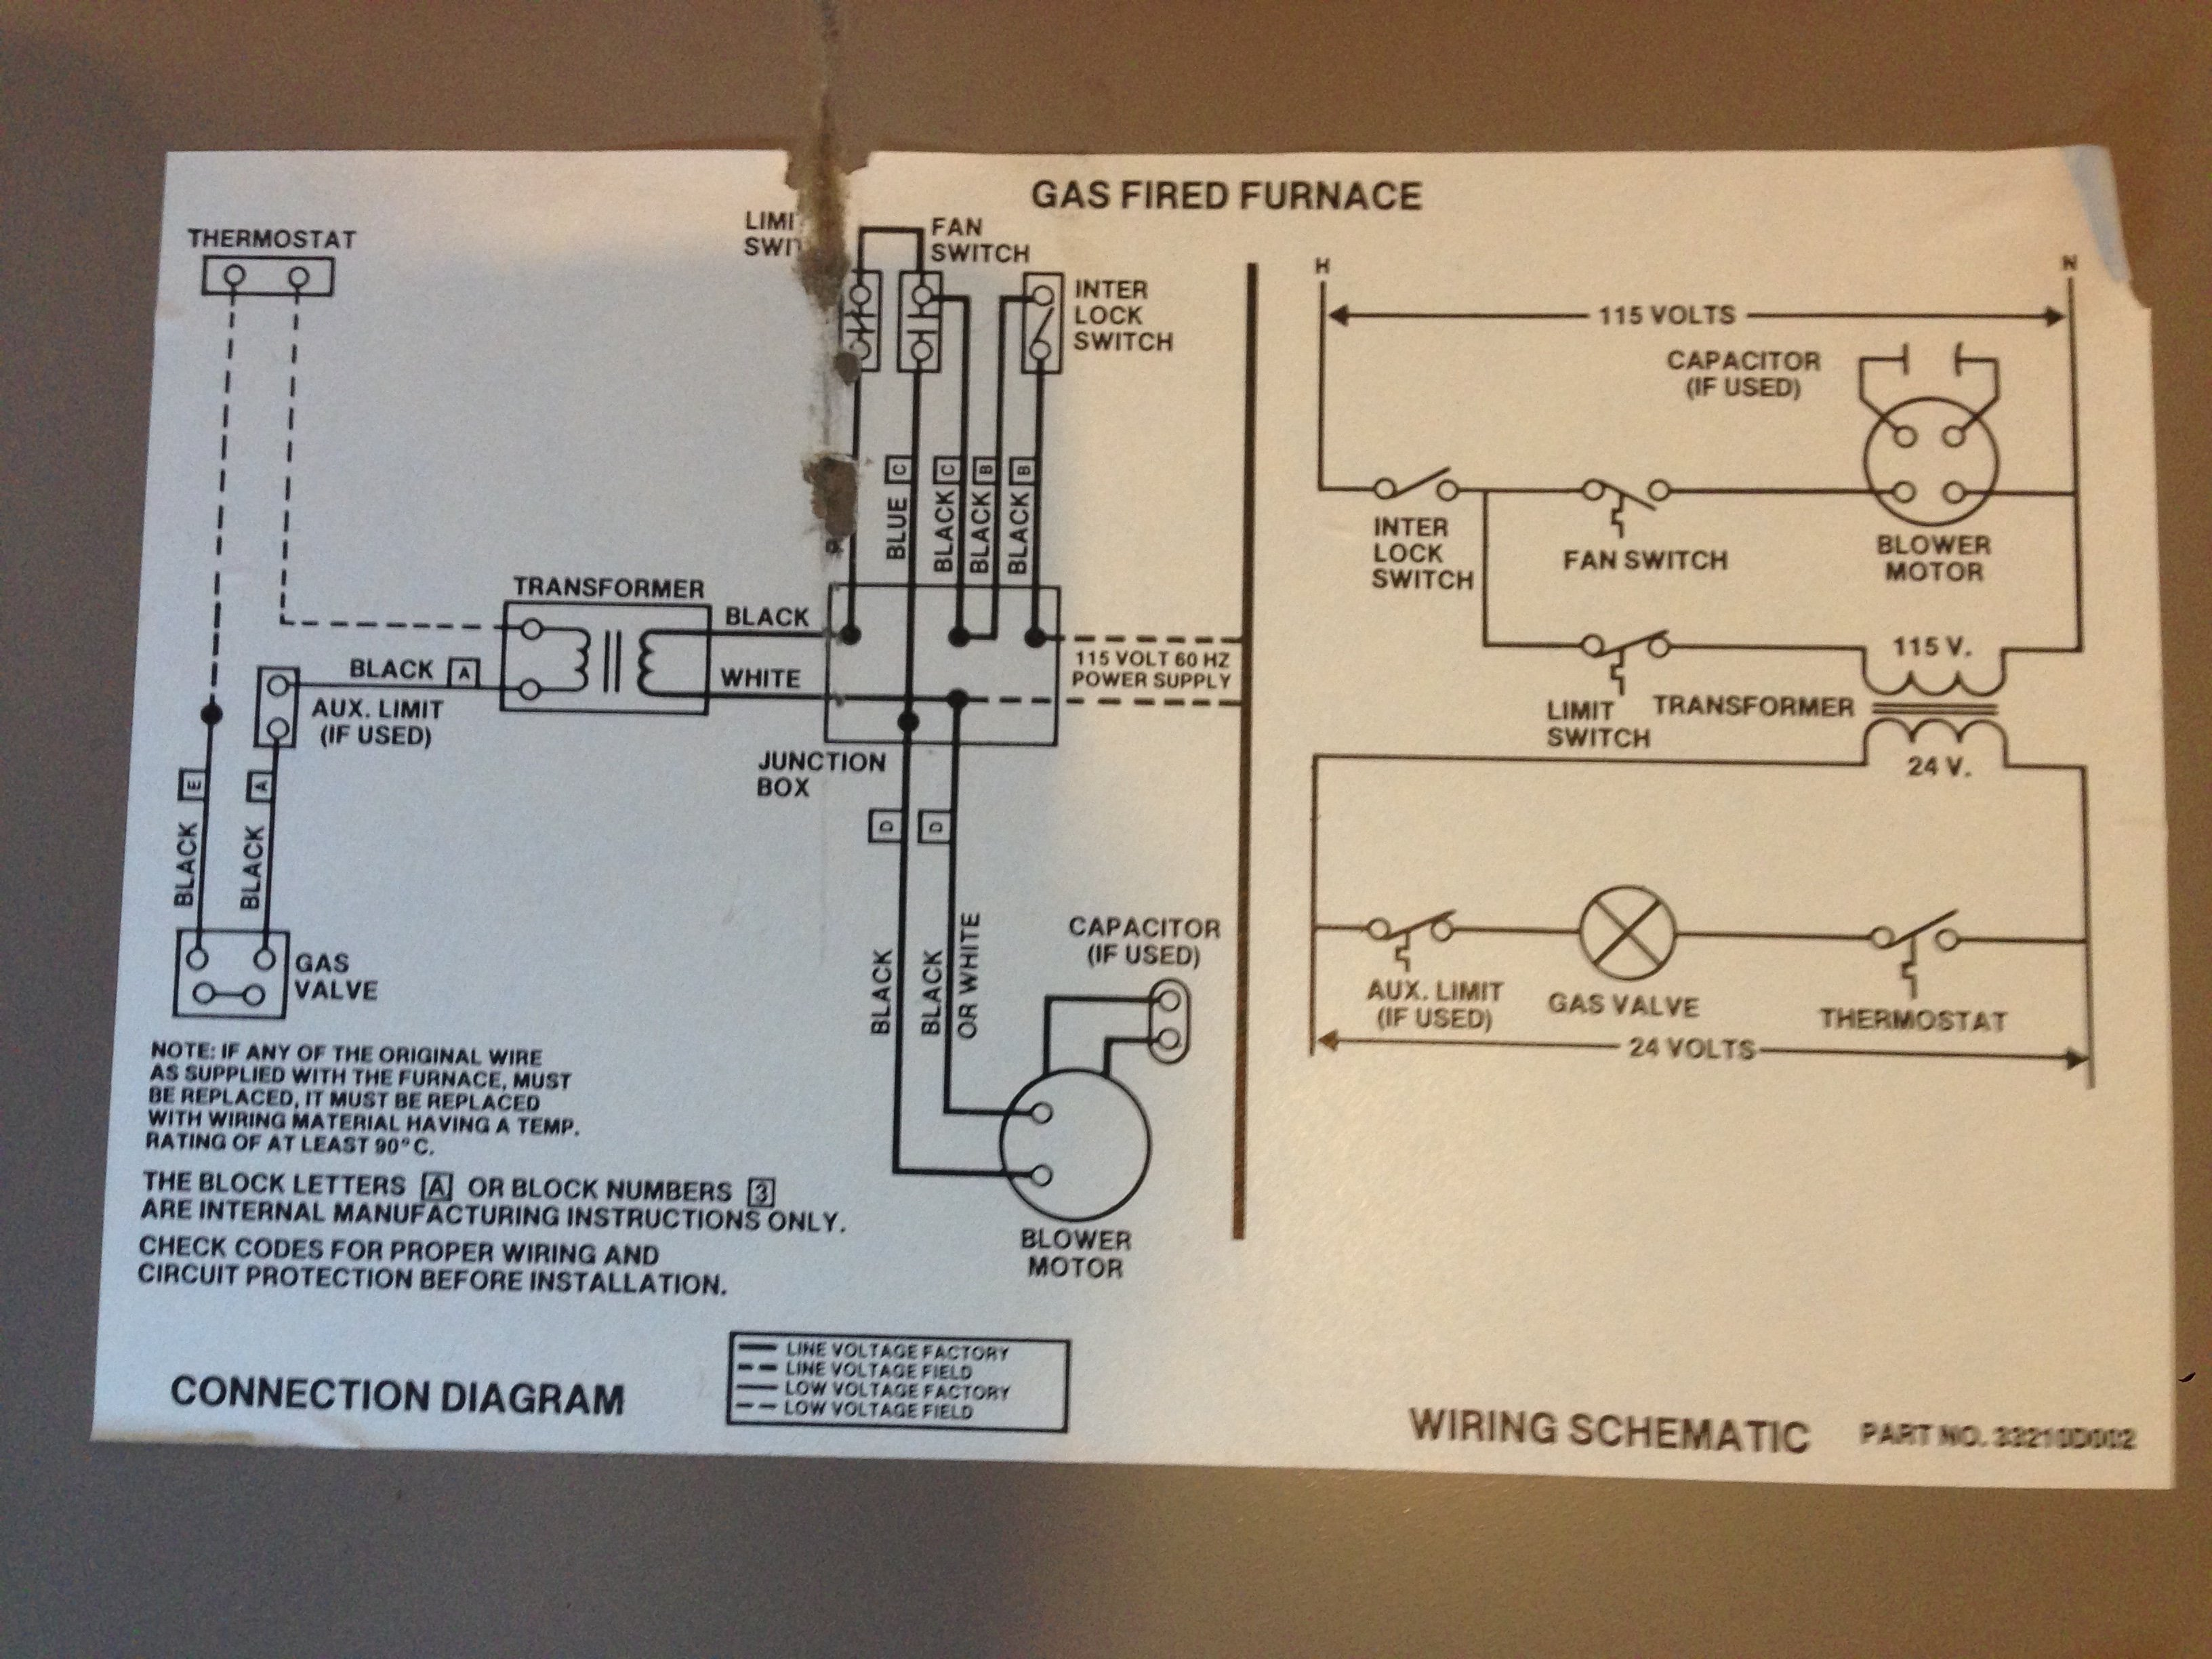 diagram] gas furnace wiring diagram force full version hd quality diagram  force - structurepvctas.borgocontessa.it  structurepvctas.borgocontessa.it